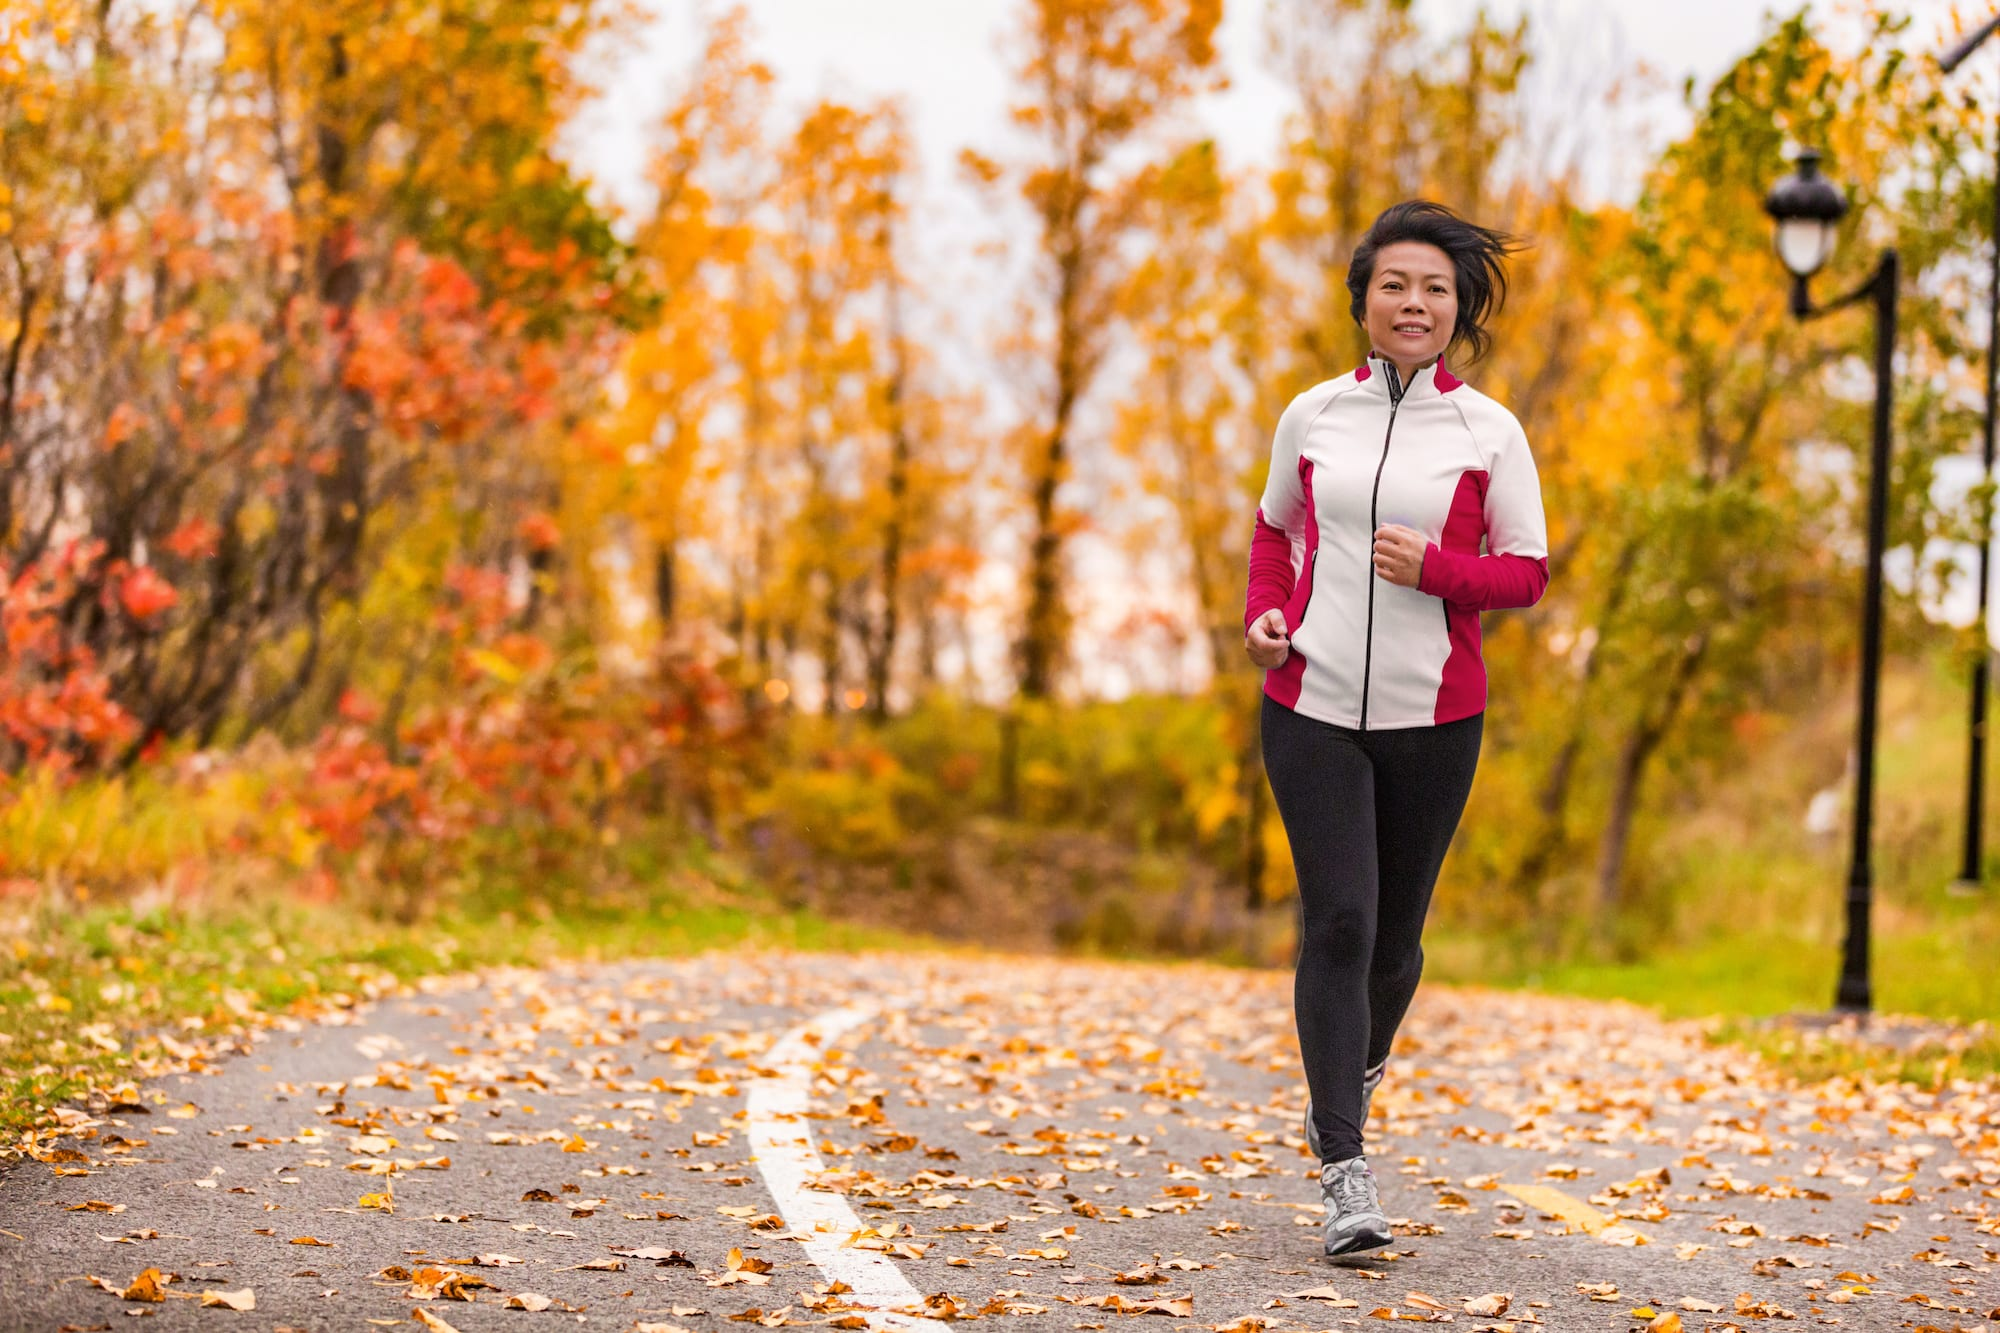 Mature Asian woman running active in her 50s. Middle aged female jogging outdoor living healthy lifestyle in beautiful autumn city park in colorful fall foliage. Asian Chinese adult in her fifties. | SLENT Hearing